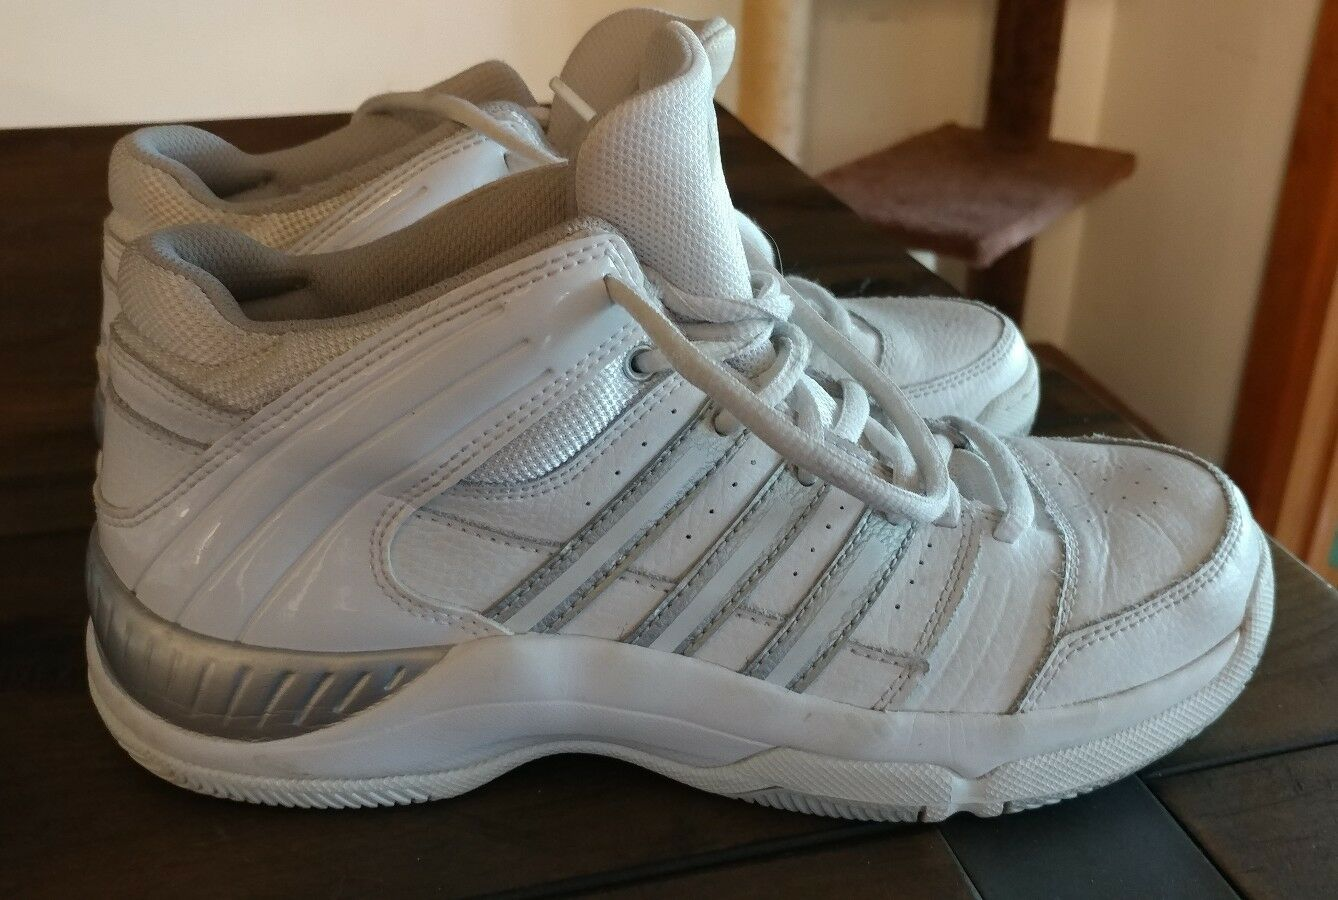 mens white 'Adidas' lace up athletic/basketball shoes size 6 Casual wild